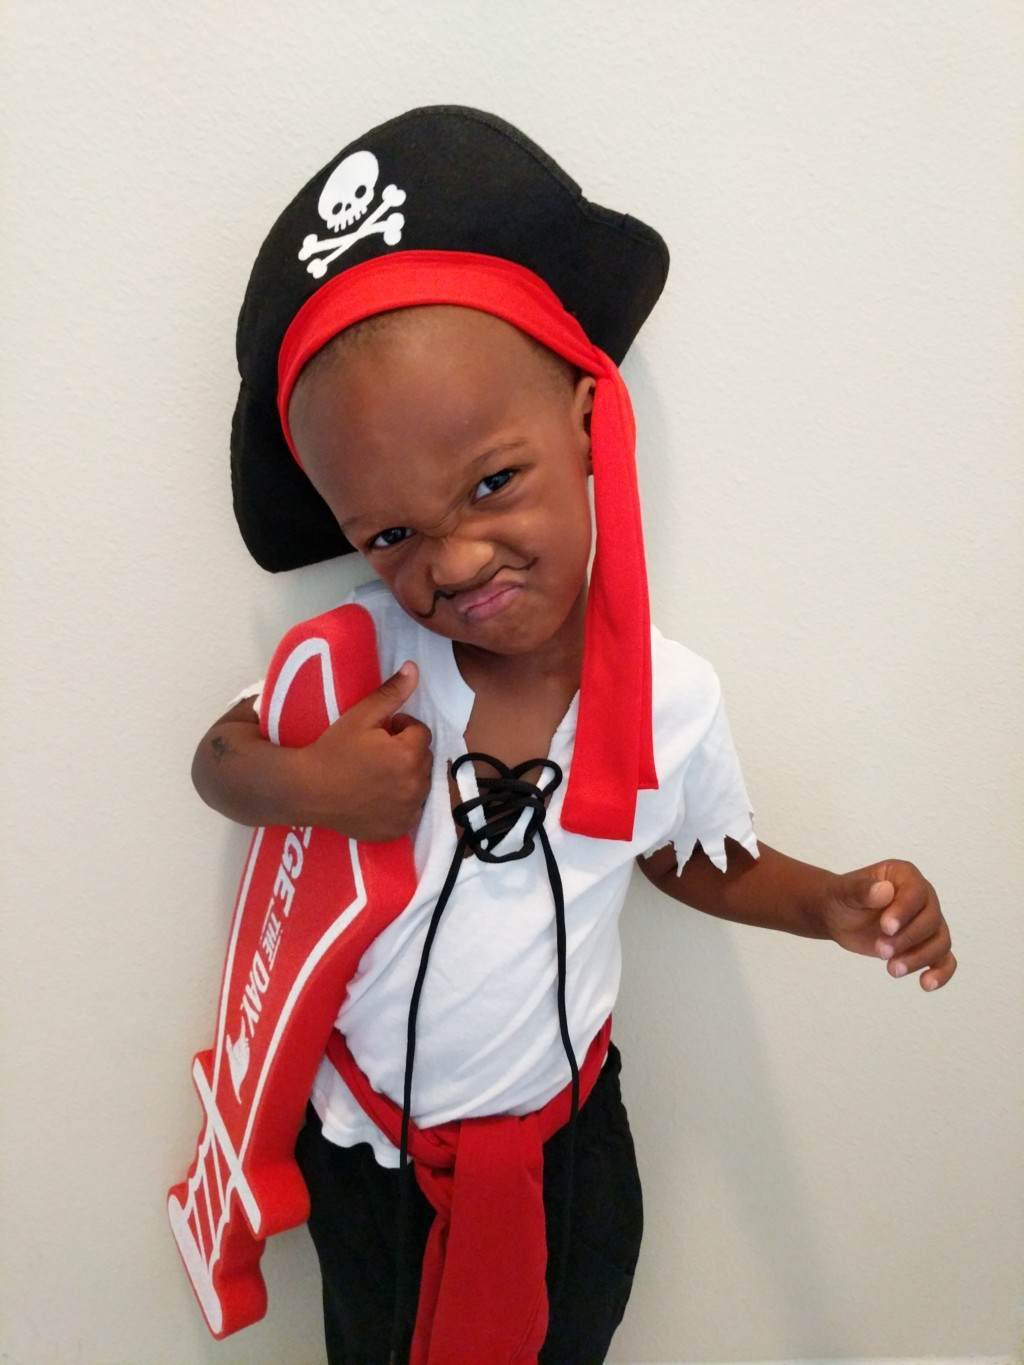 Diy kids halloween costumes that are easy to make on a budget kids pirate costume diy pirate costume for kids solutioingenieria Choice Image